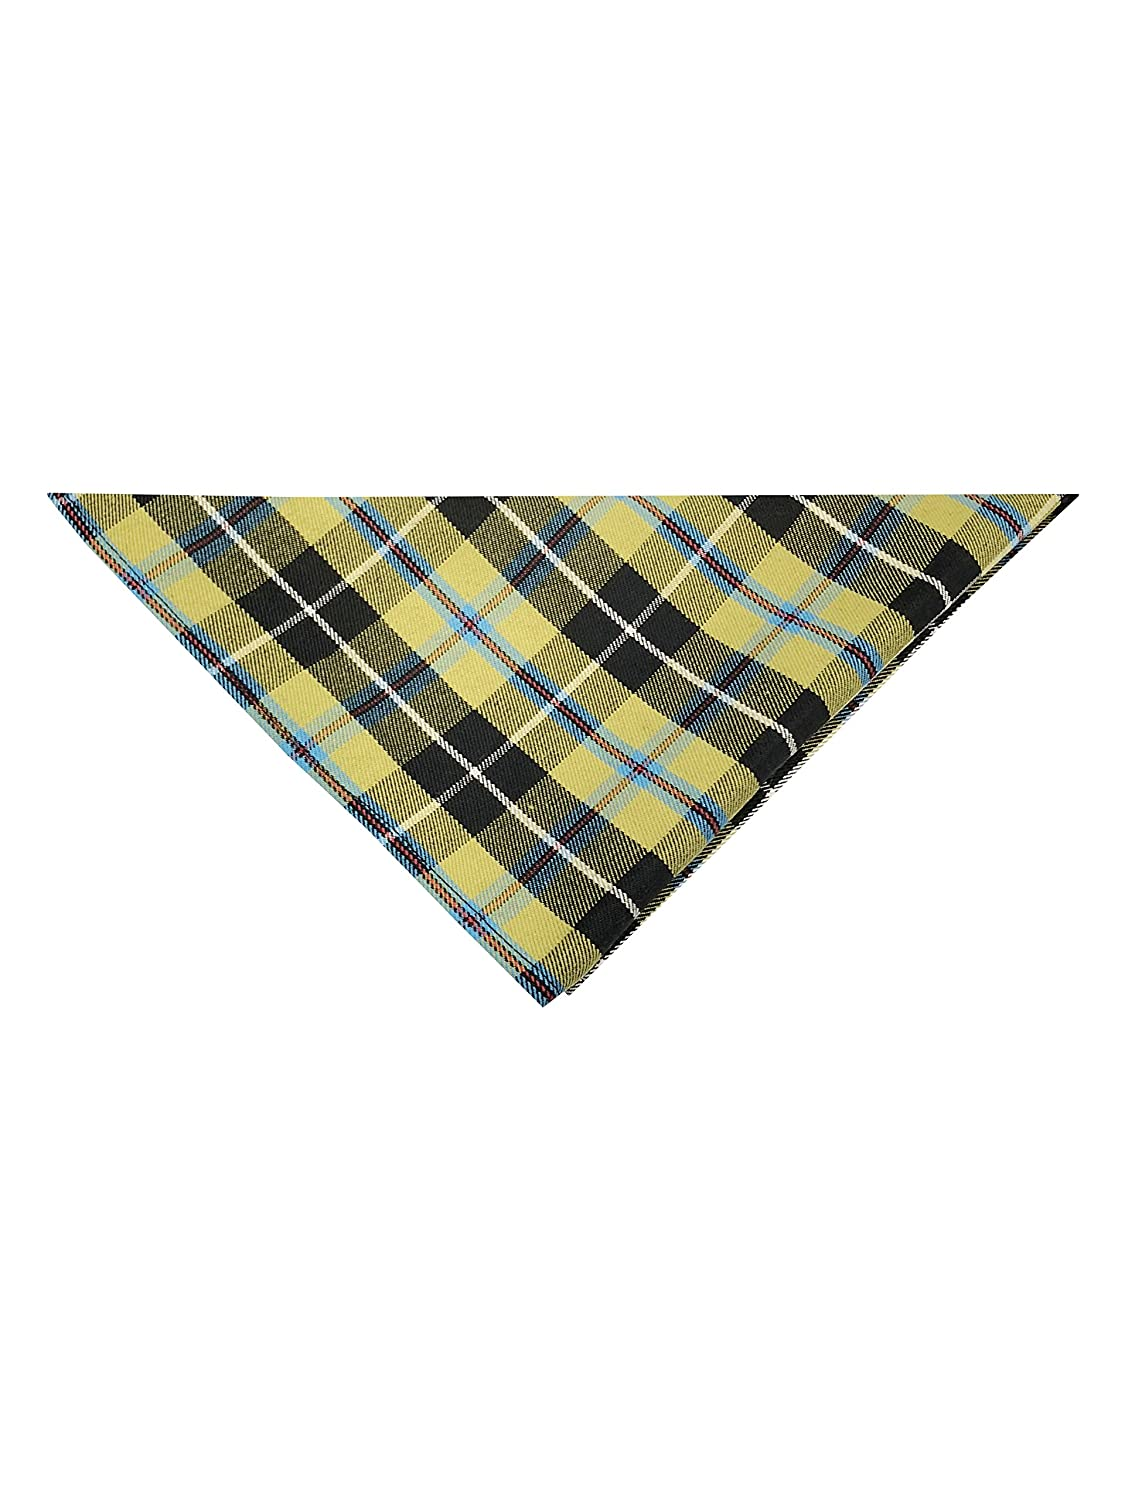 Cornish National Tartan Pocket Square Available In 2 Sizes